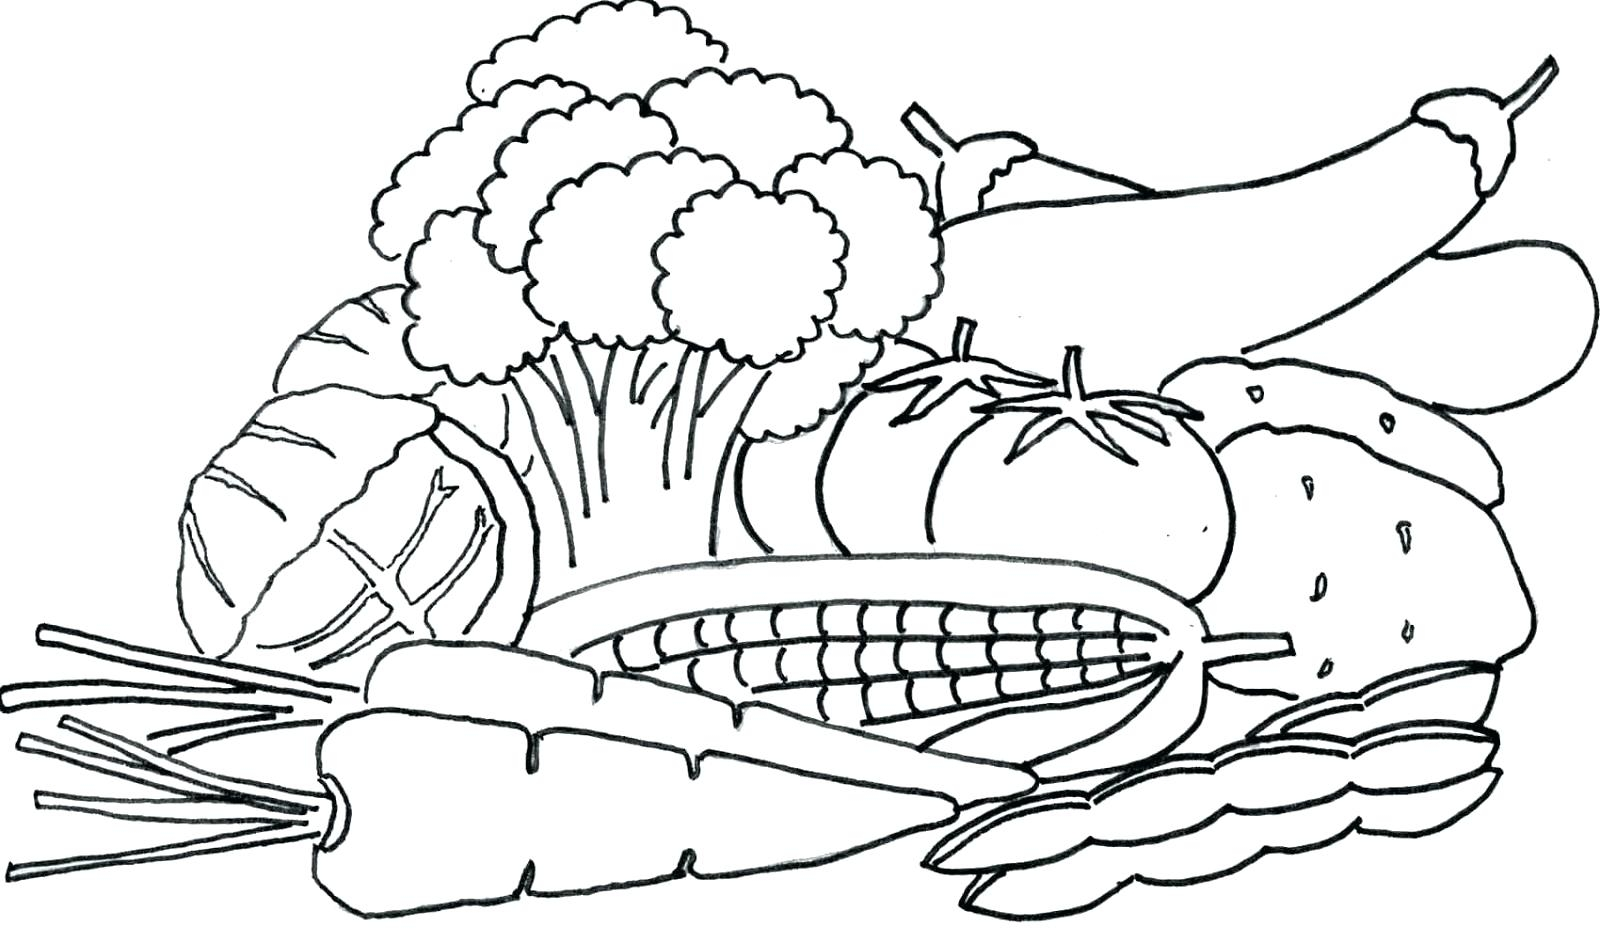 Printable Fruits And Vegetables Coloring Pages at ...